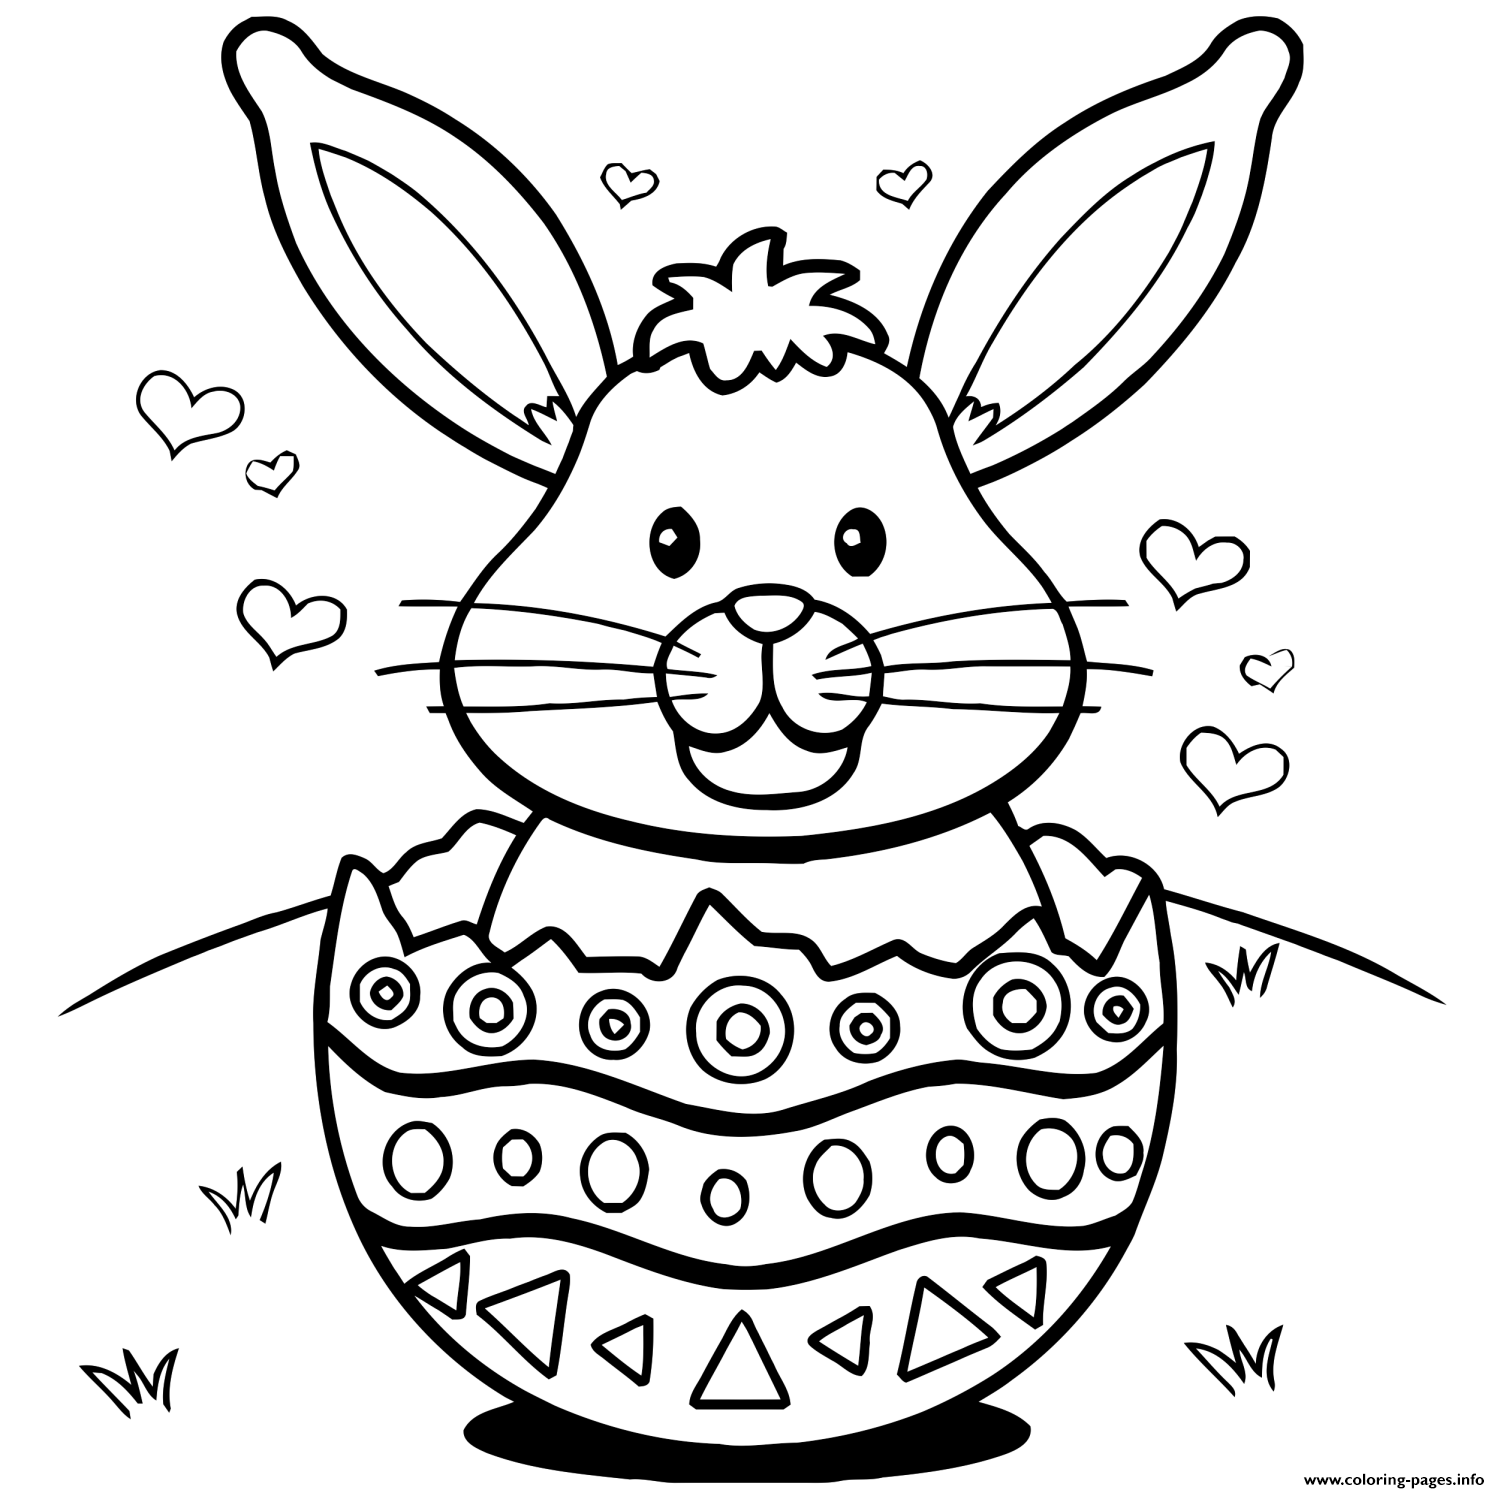 - Easter Bunny Eggs Hearts Coloring Pages #1592186 - PNG Images - PNGio